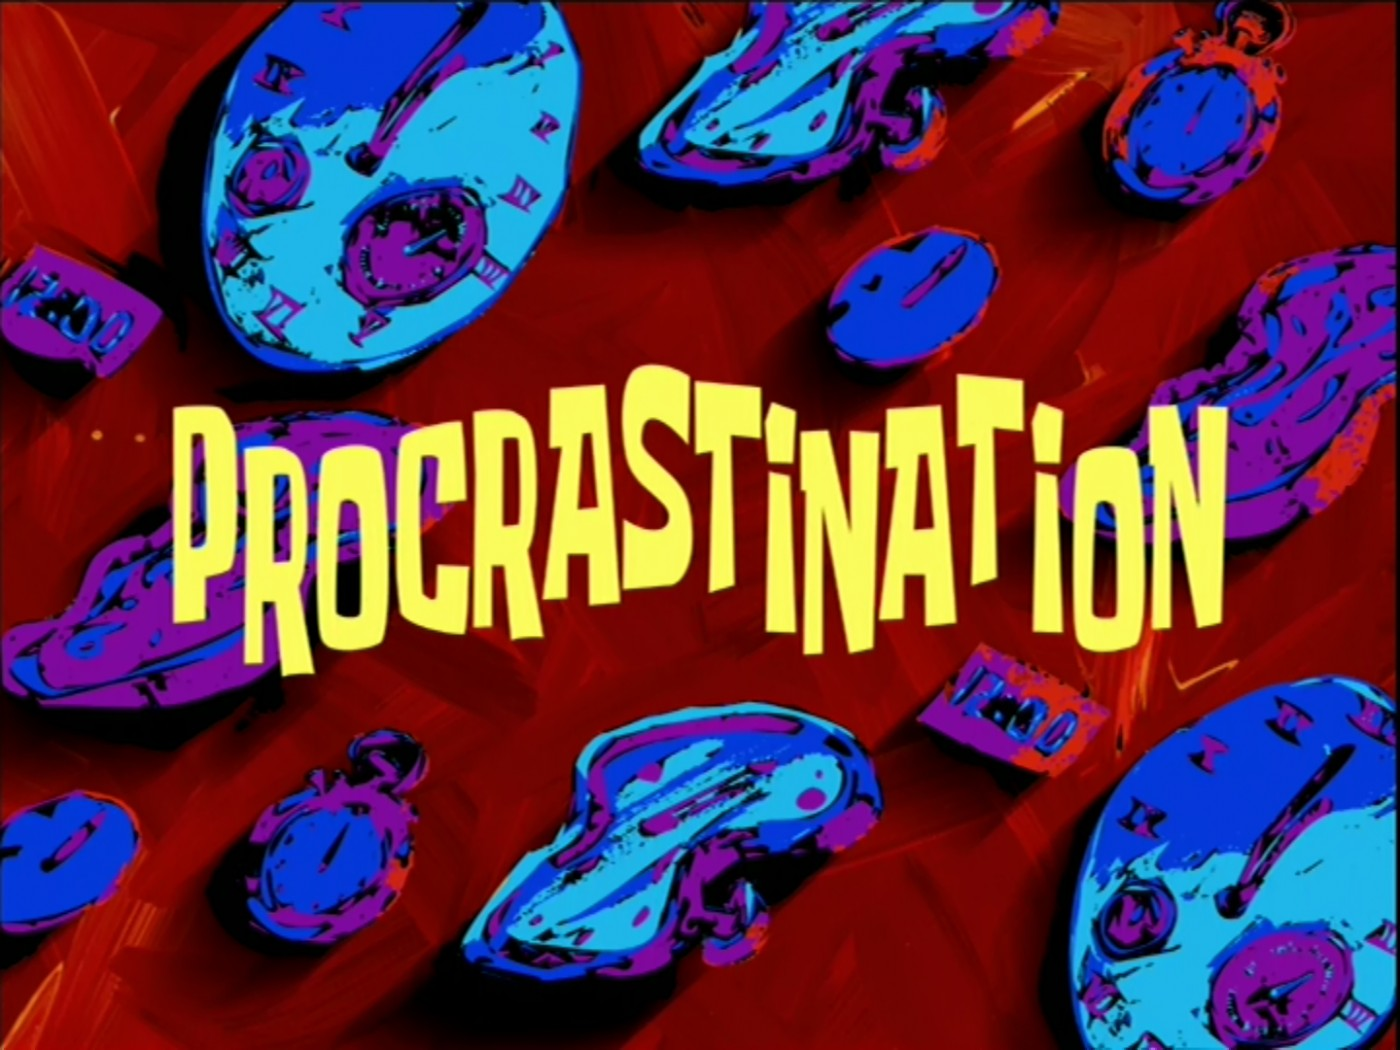 009 Procrastinationtranscript Encyclopedia Spongebobia Fandom Spongebob Writing Essay The Latestcb201806220 Gif Font For Hours Meme Rap Surprising Writes An Full Episode Generator Deleted Scene 1400